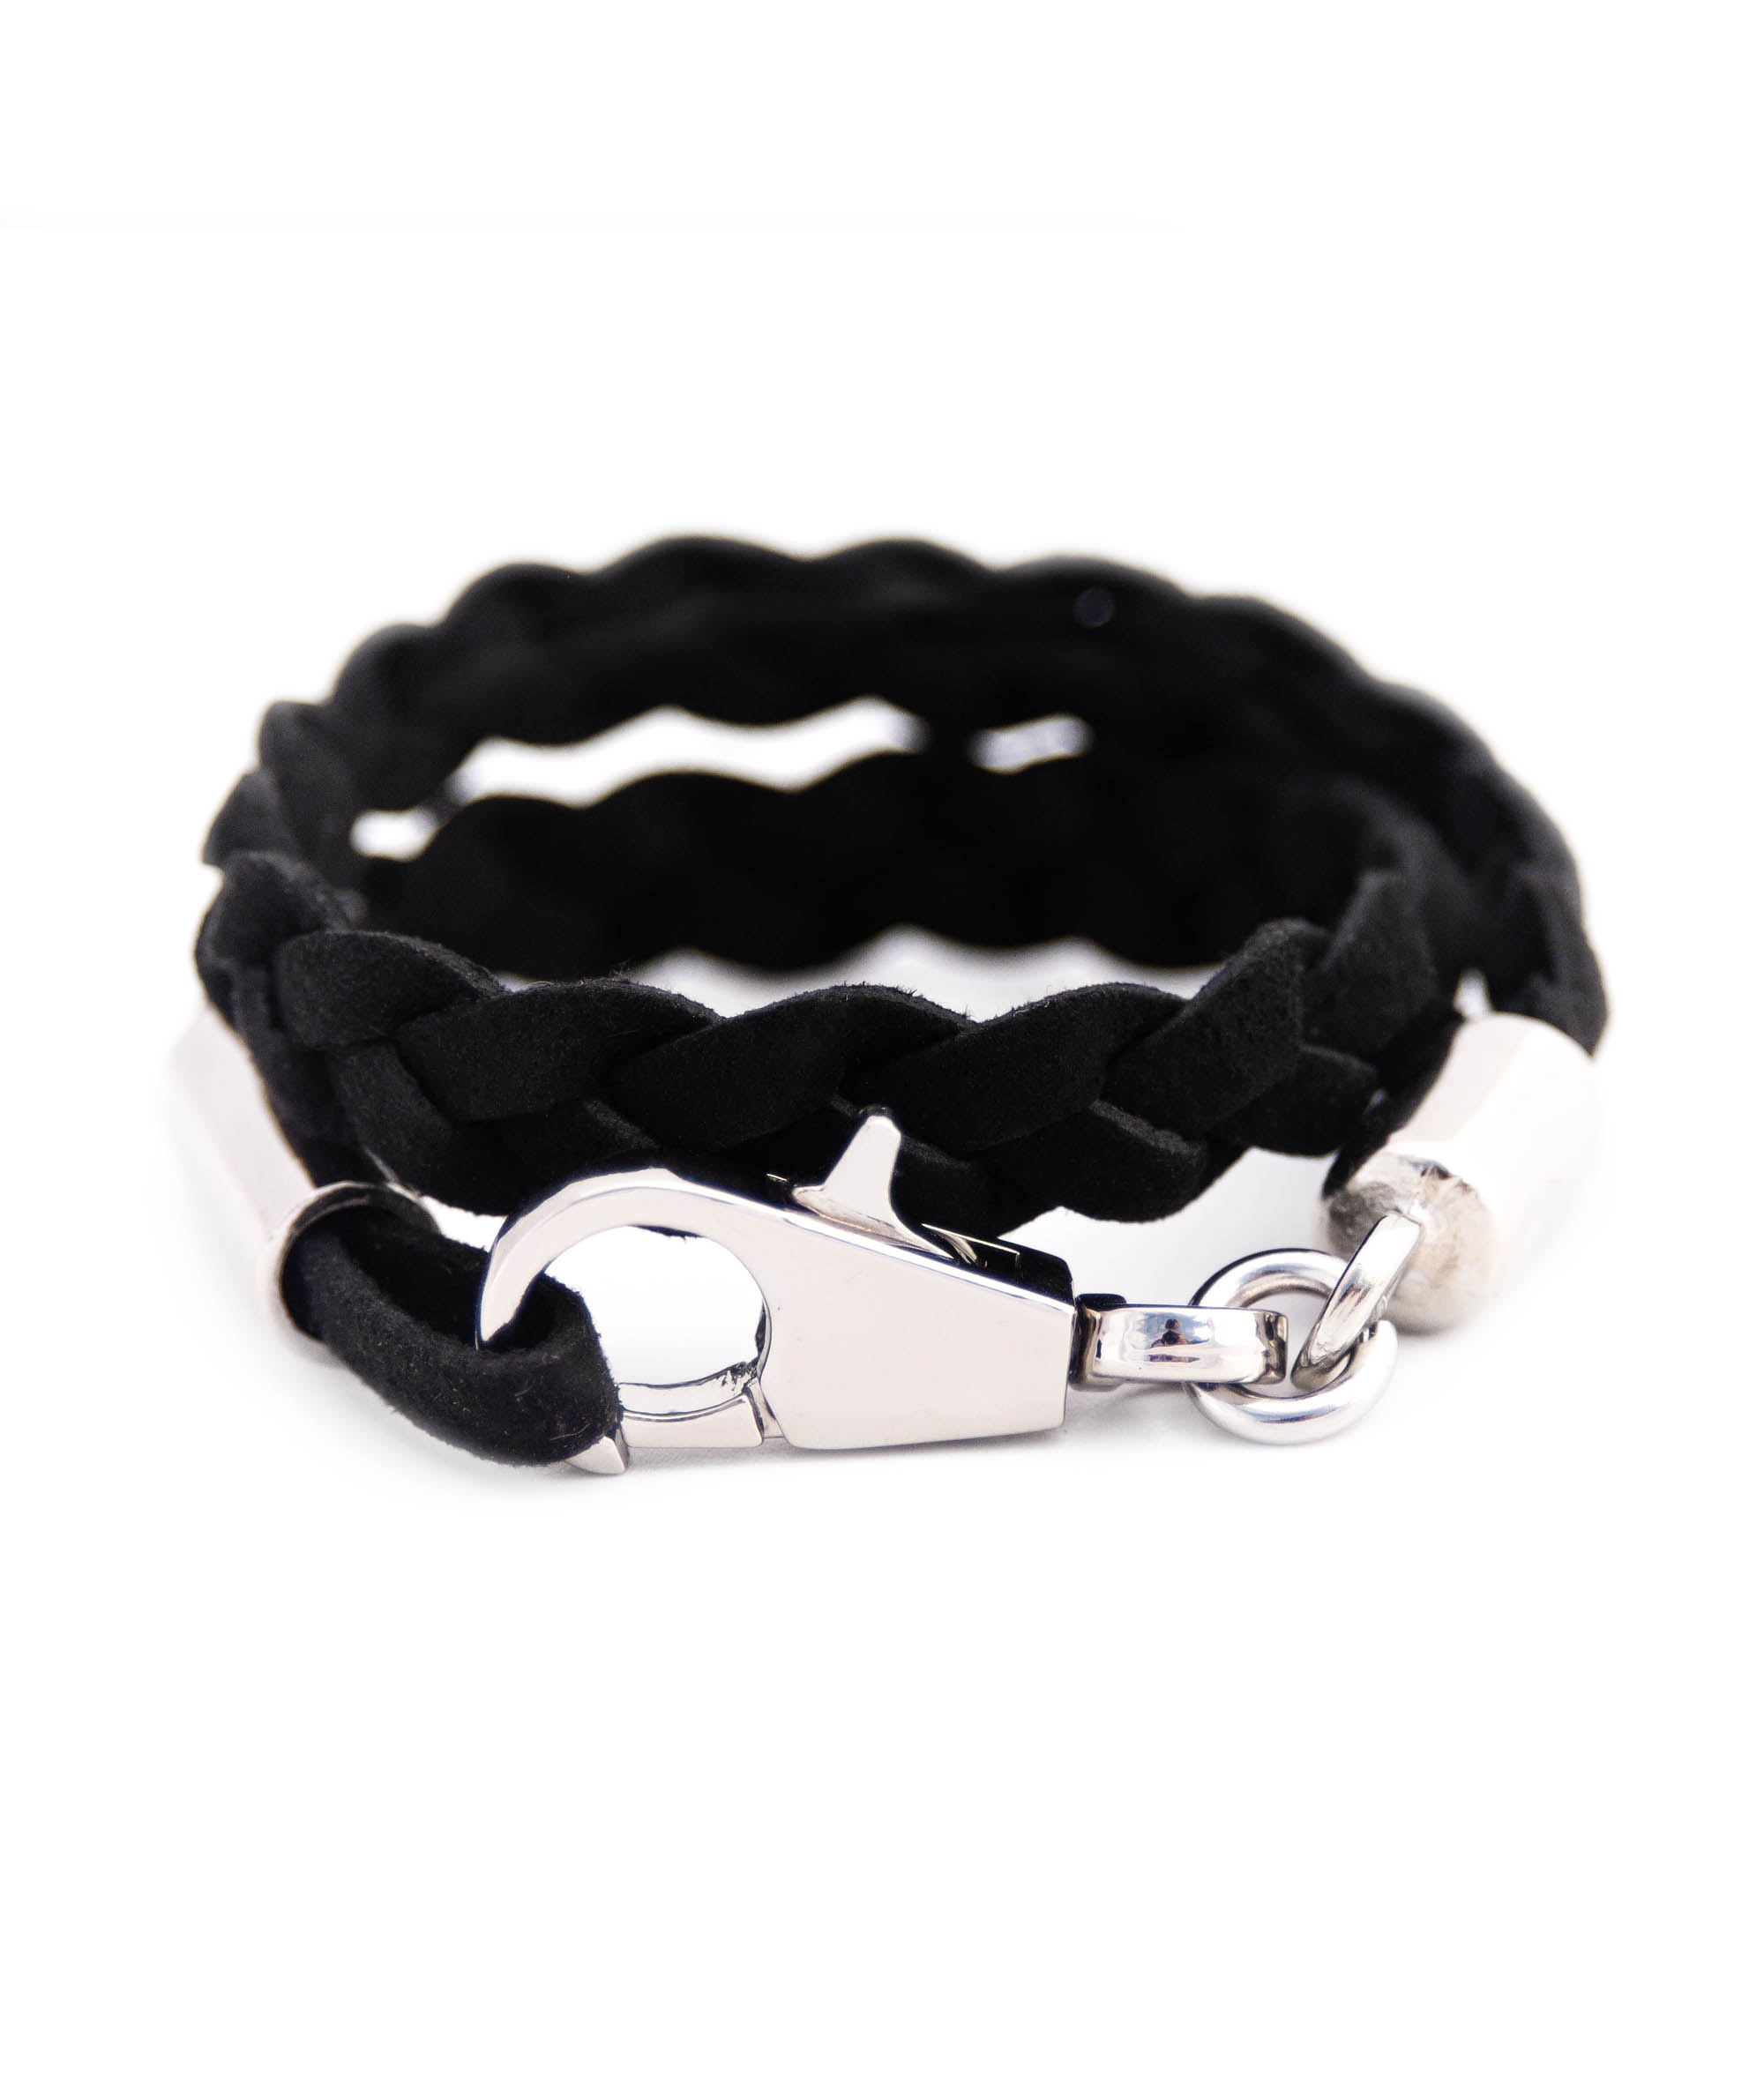 hires of en eu london venture bracelet leather links mens black